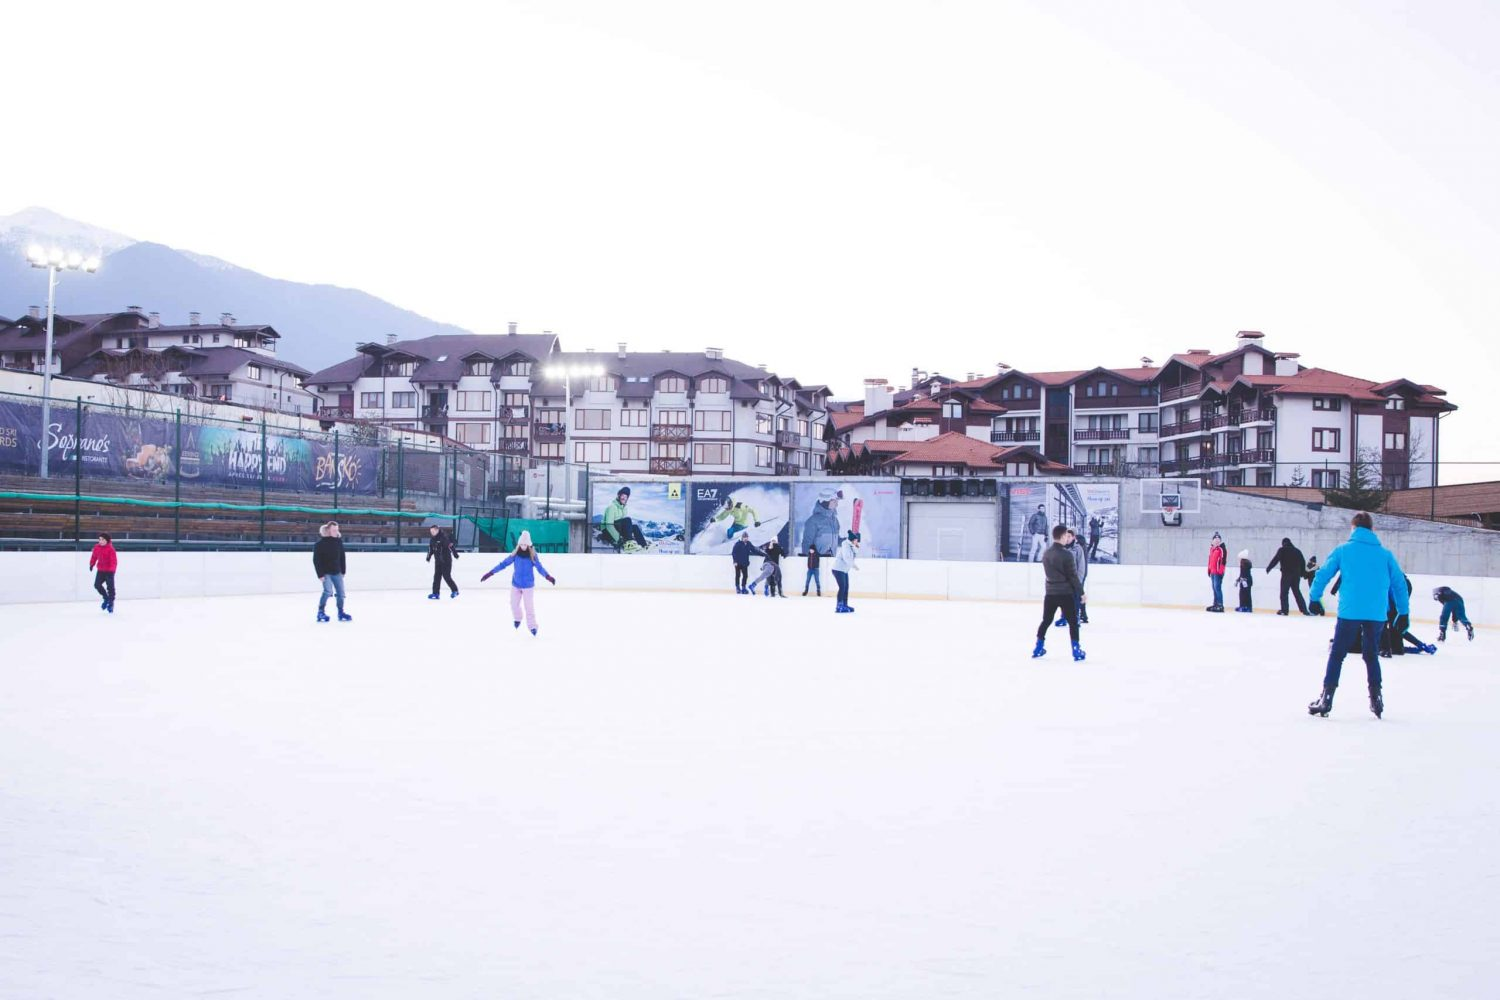 The ice skating rink in Bansko, Bulgaria